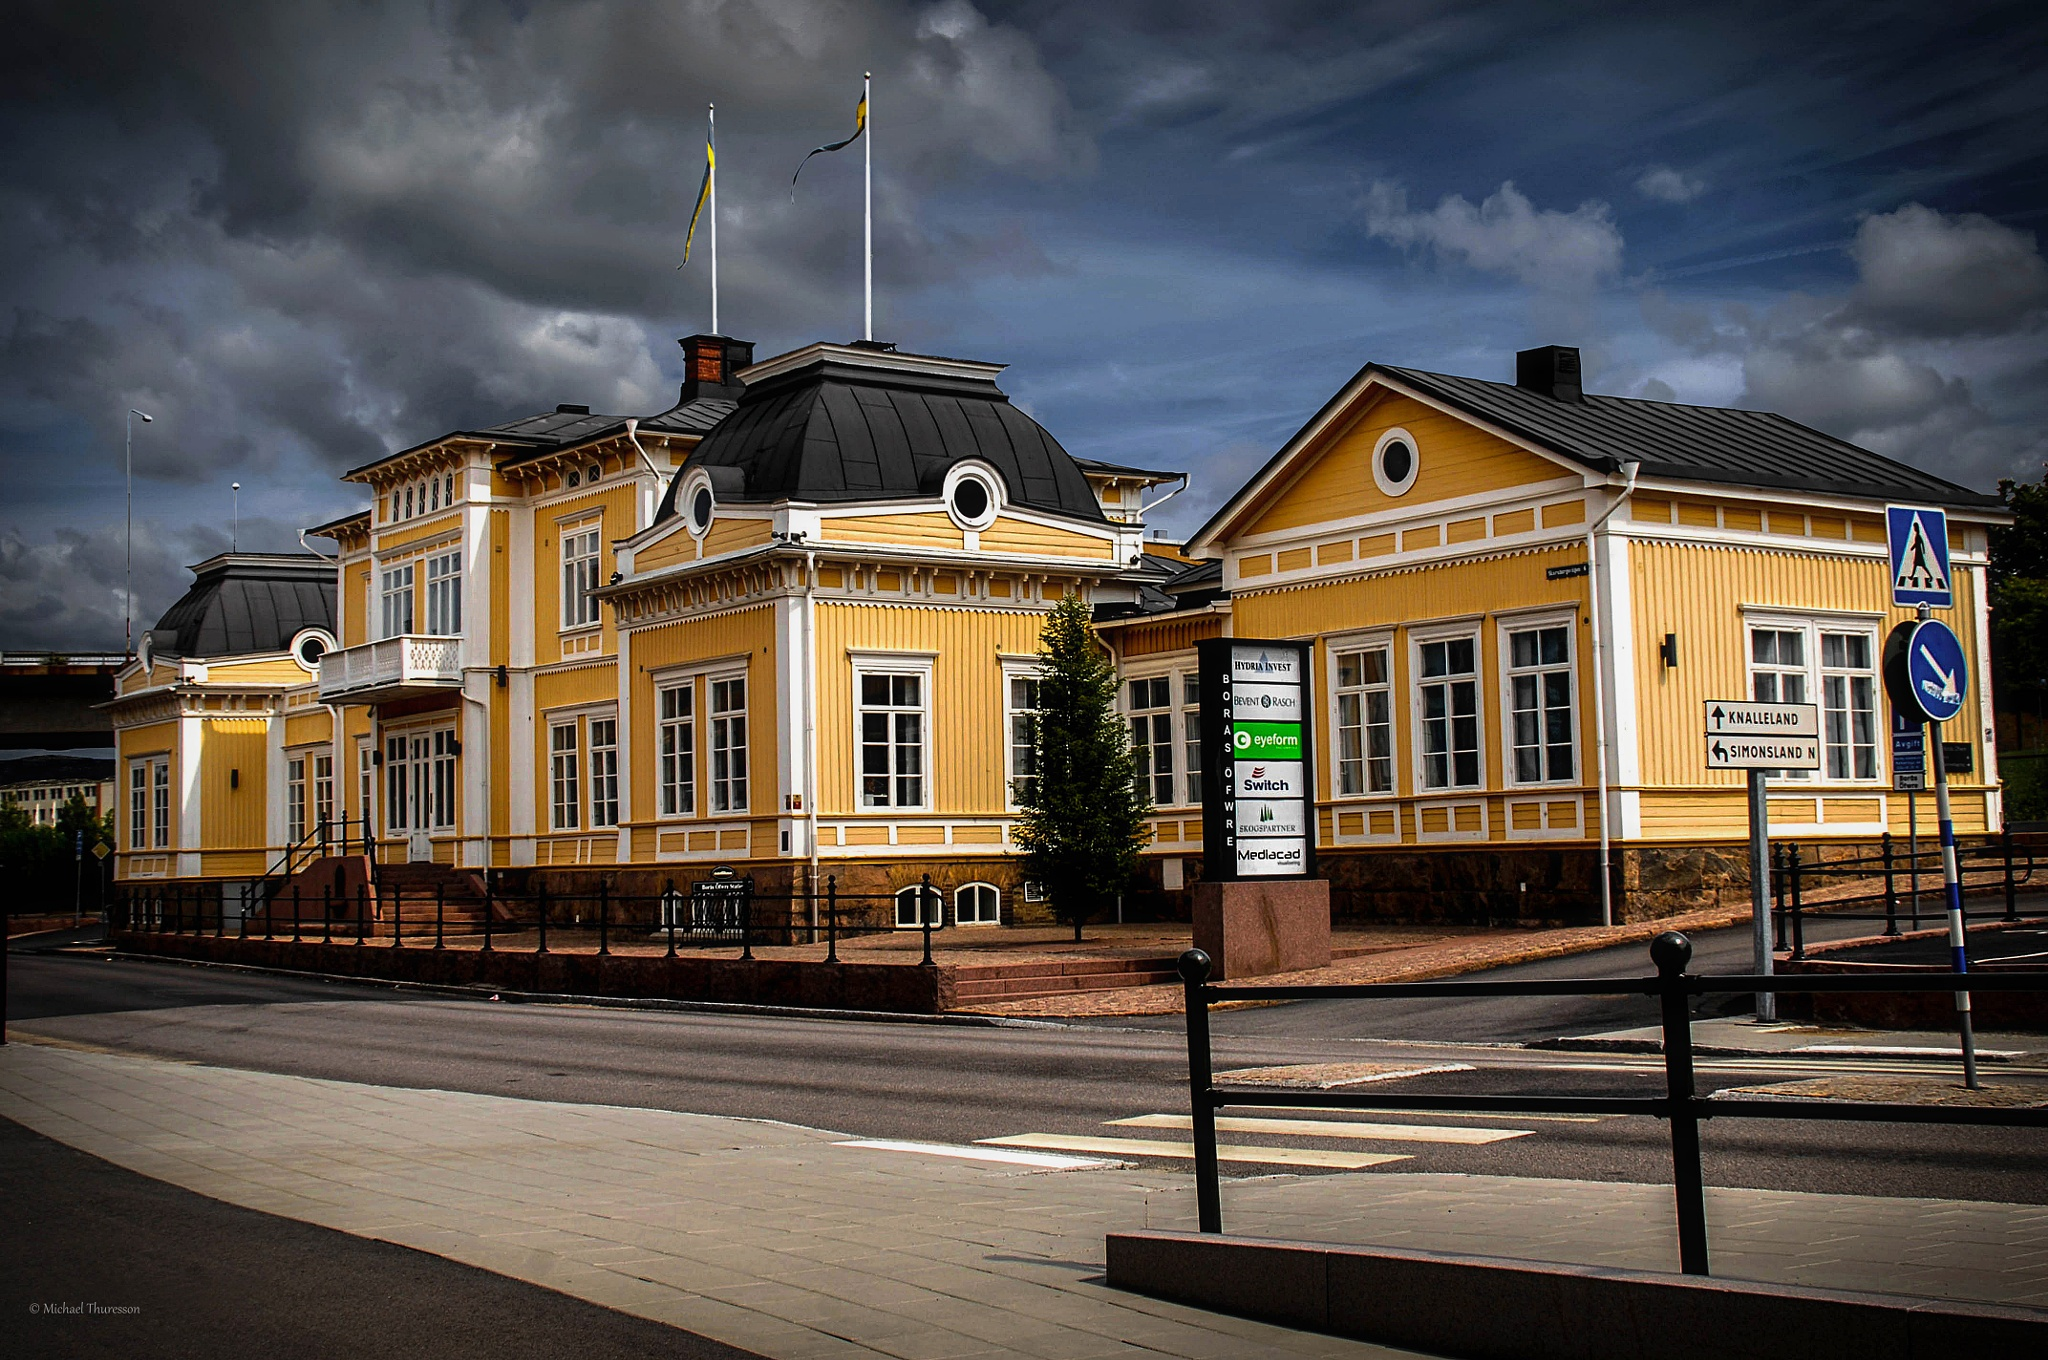 Train station by michael.thuresson.5